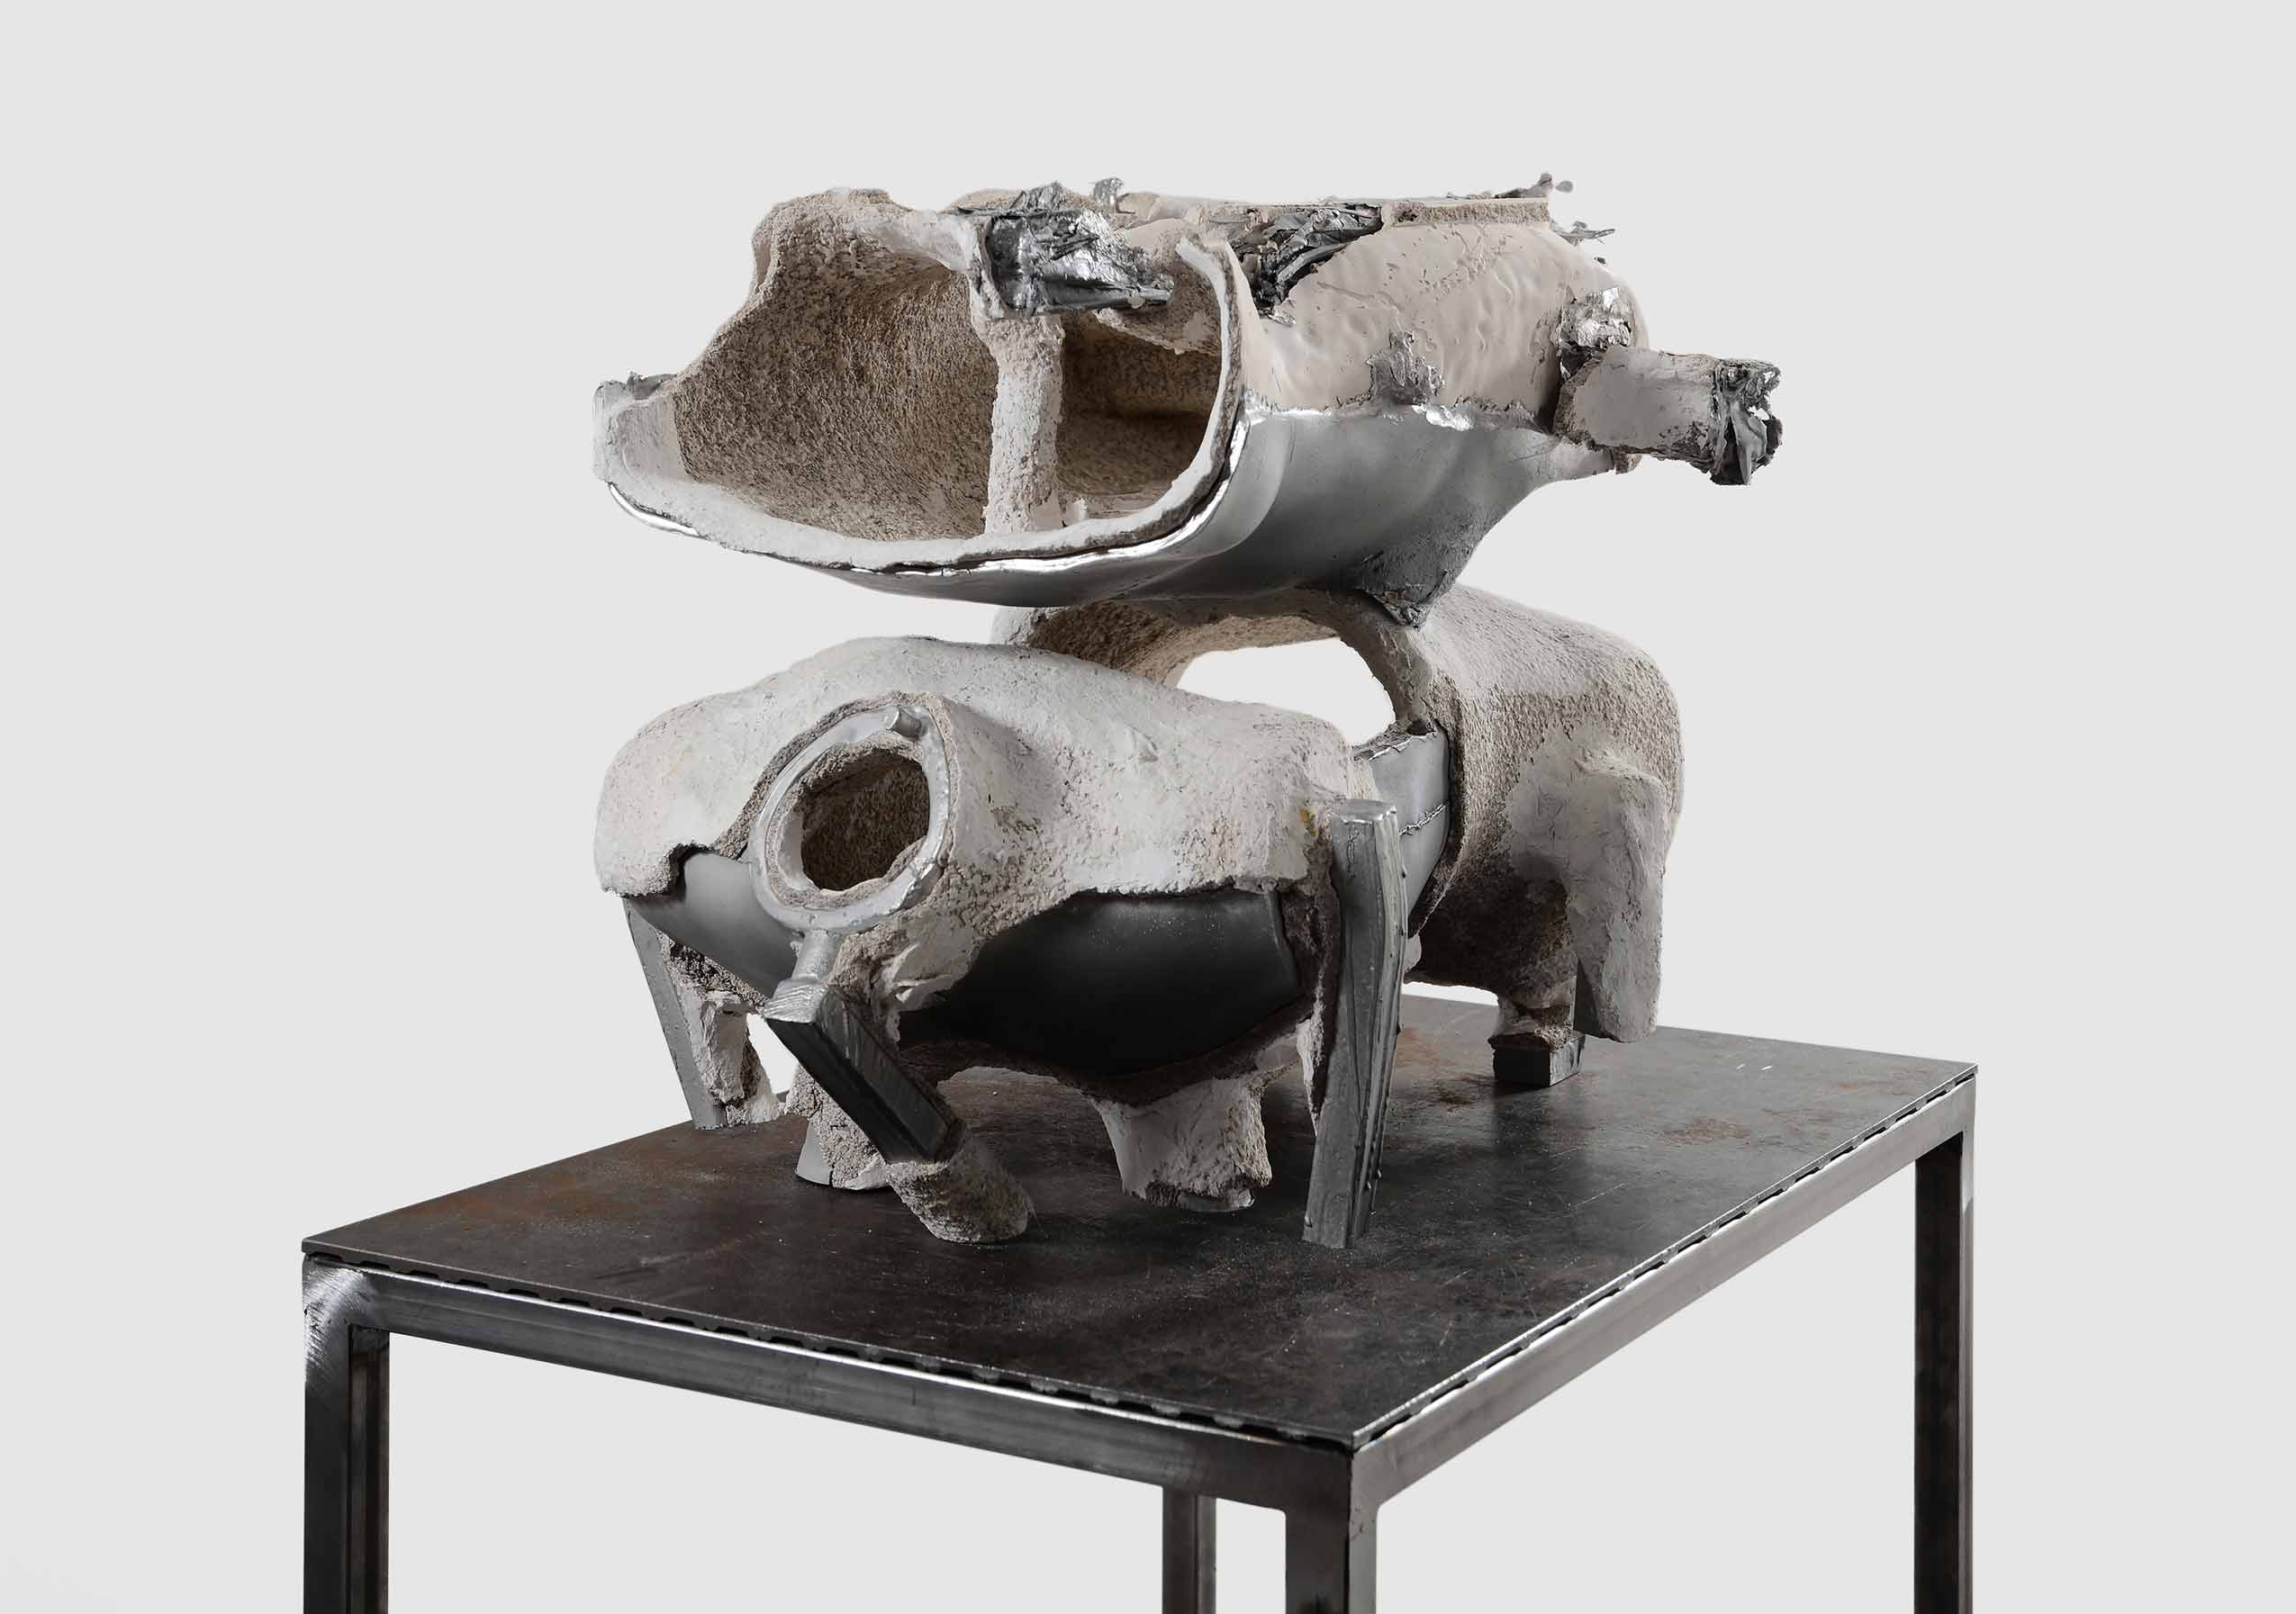 HELMETS, sculptural project by June Crespo. Cast aluminum, ceramics and metal construction